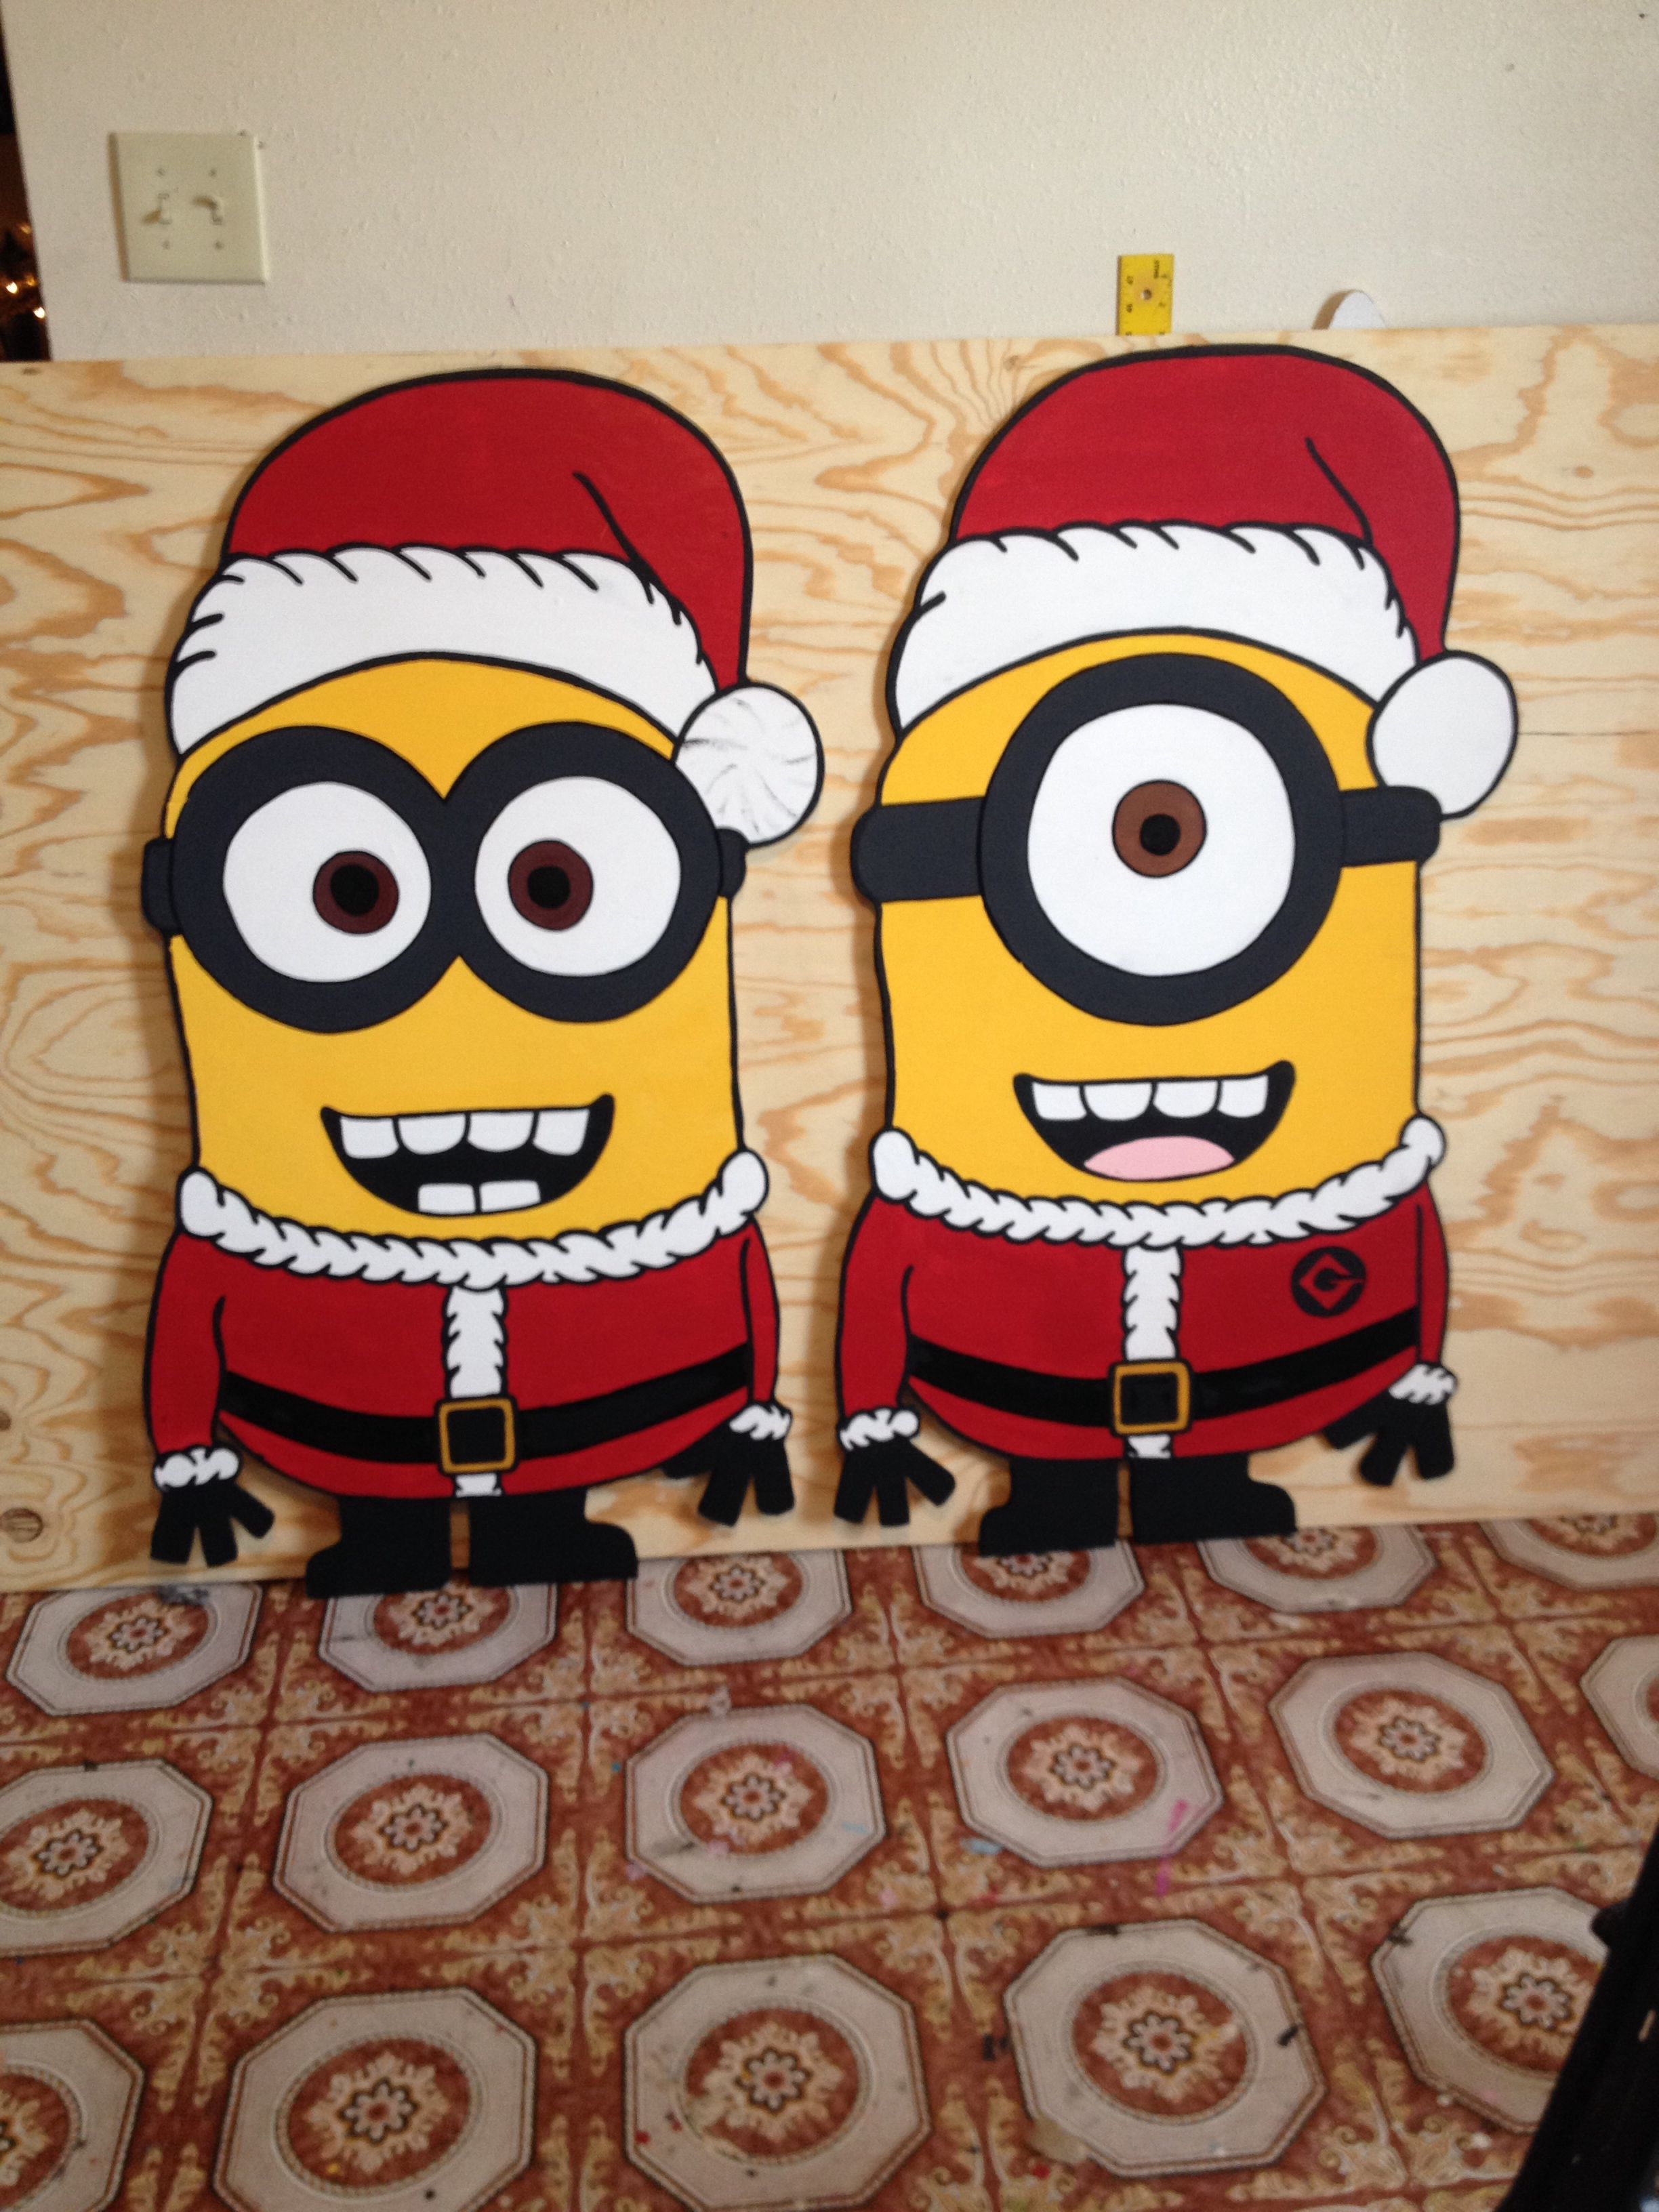 Diy christmas lawn decorations wood - Christmas Minions Done By Markeysha And Keith Ross Follow Me On Facebook For More Diy Christmas Yard Artchristmas Woodchristmas